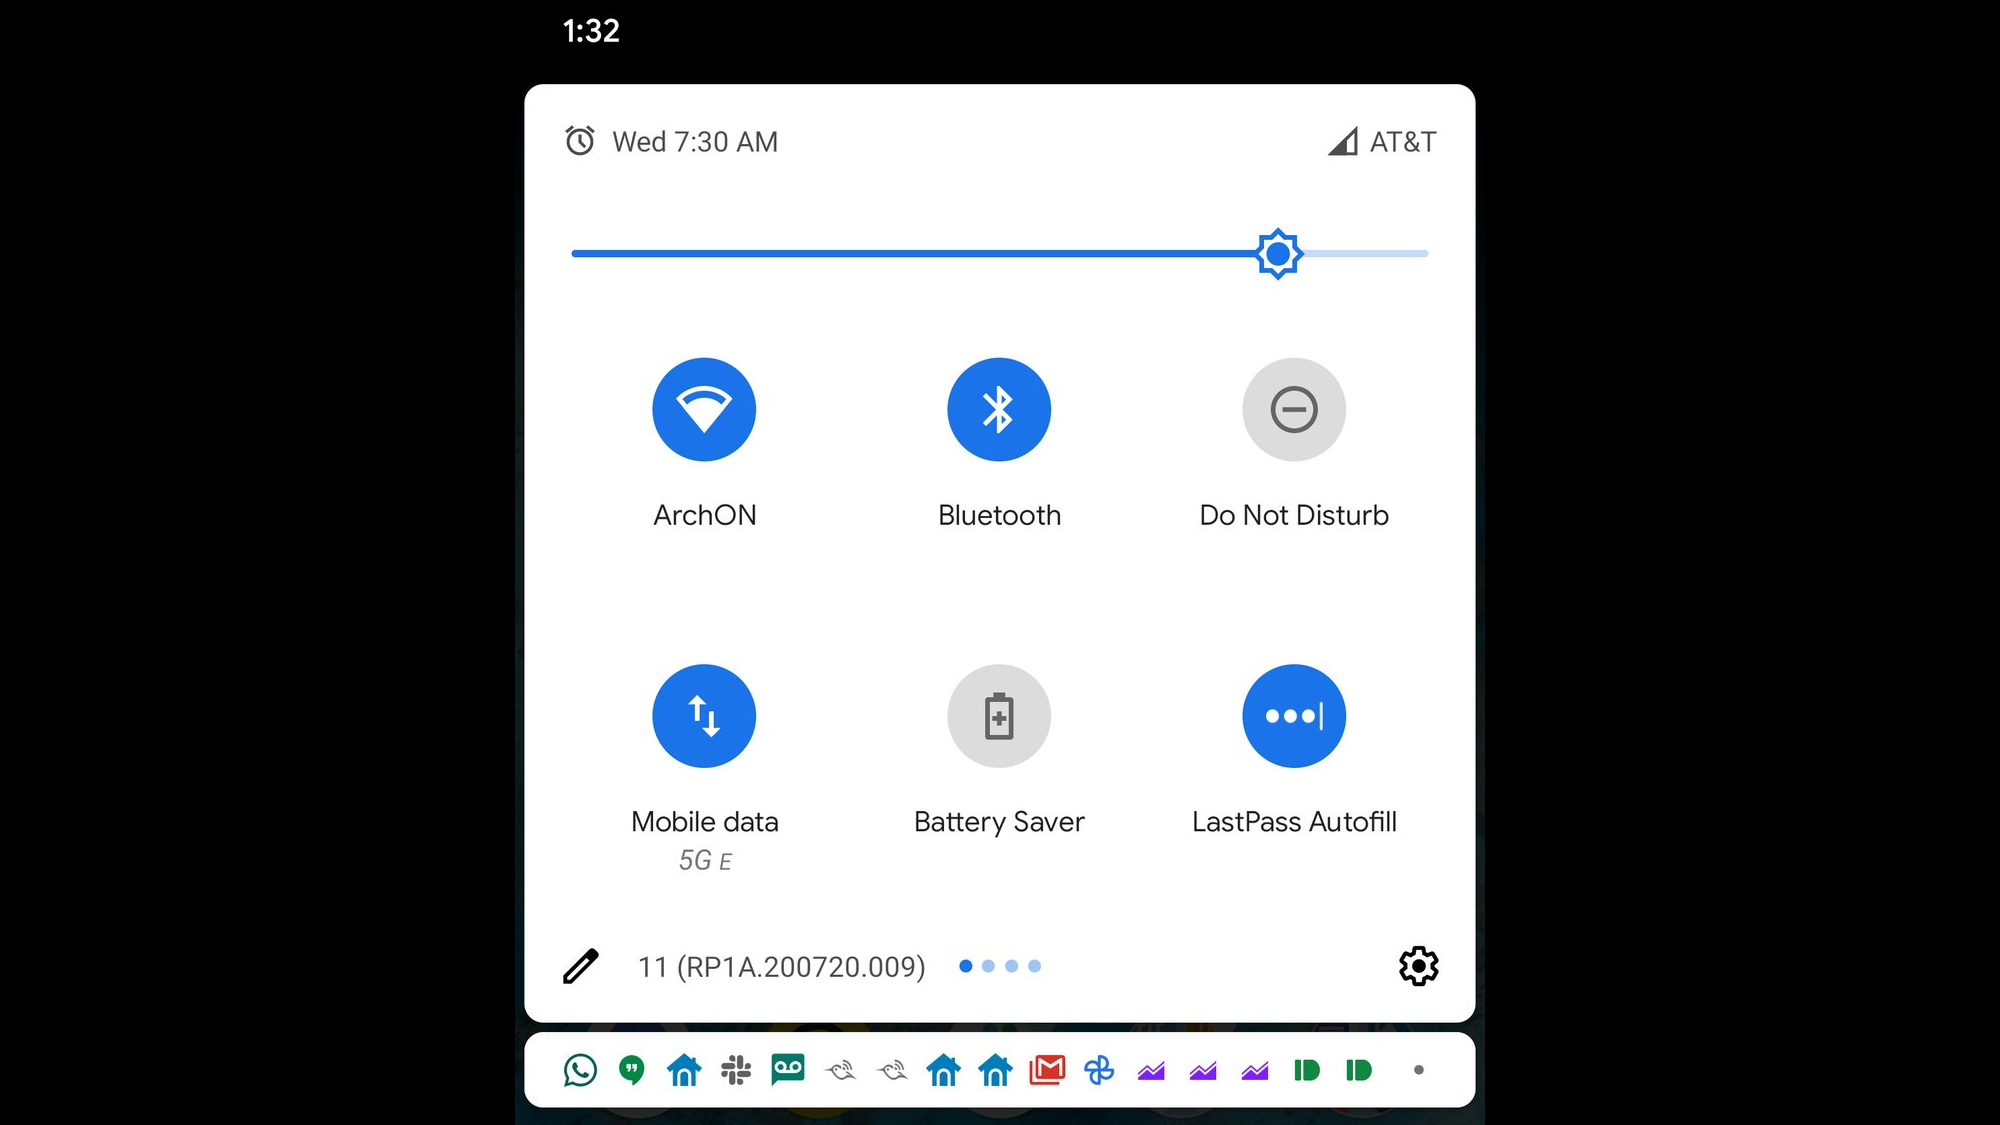 android 11 quick settings tiles 6 rows.'